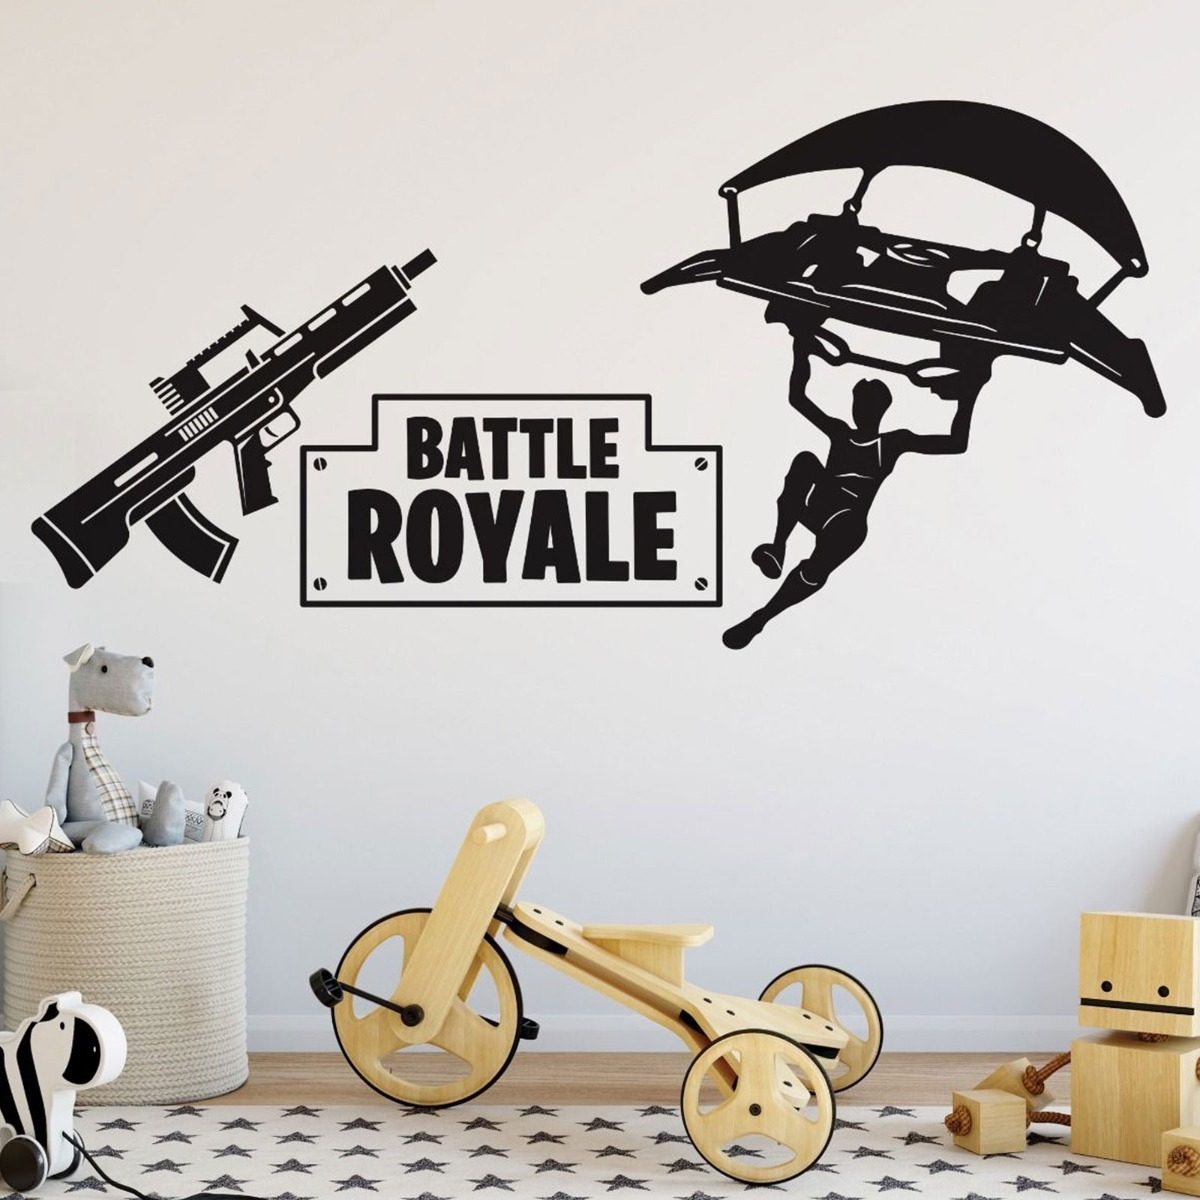 Details about  /Battle Royal Fort night 3D Window Wall Sticker Removable Kids Decals Art